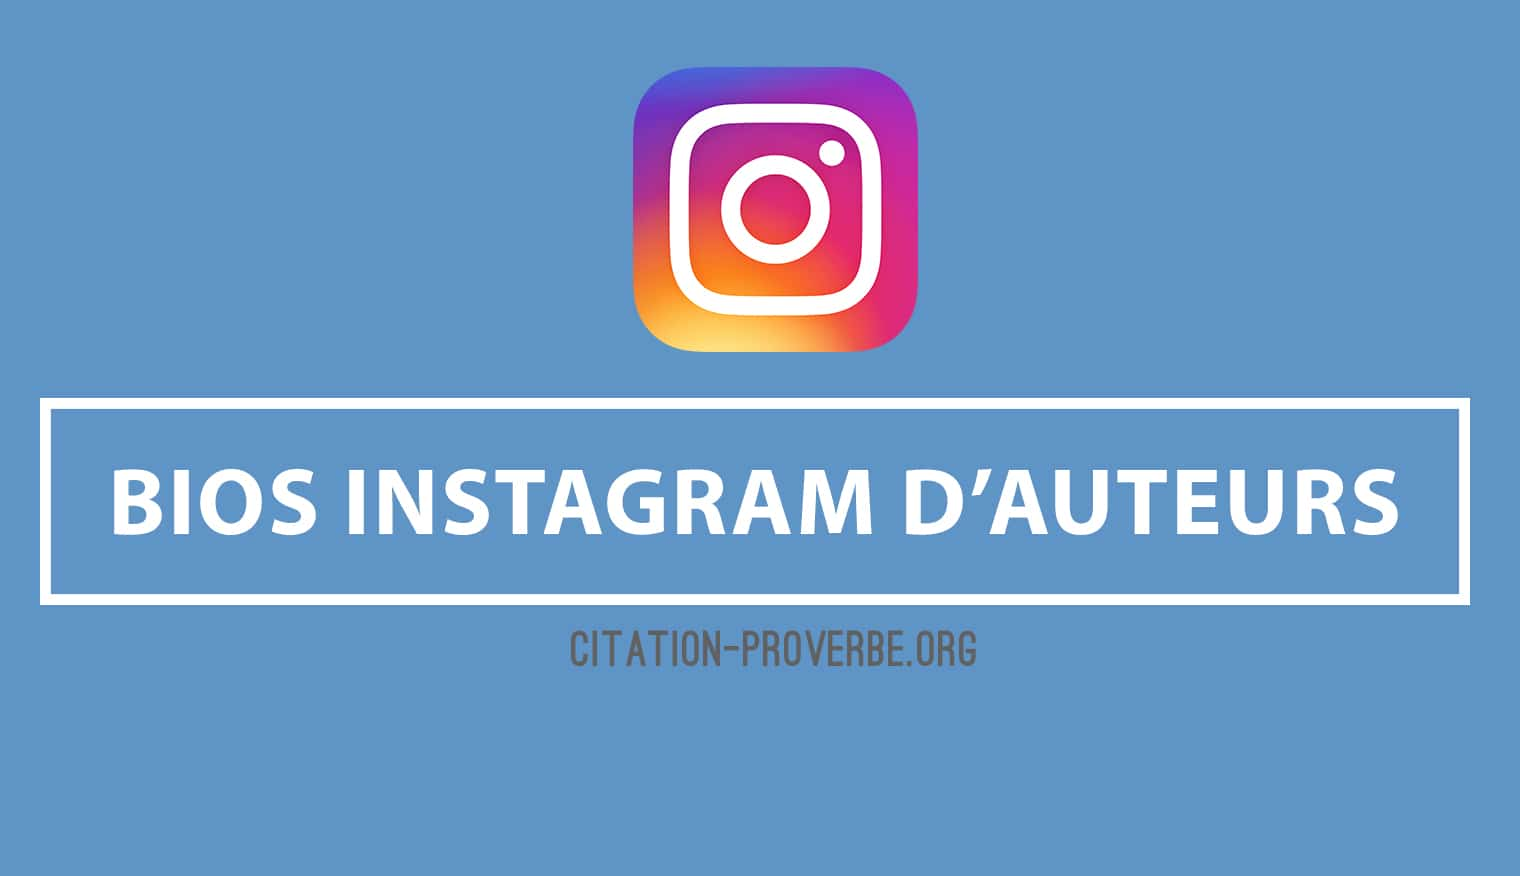 Bios Instagram d'auteurs